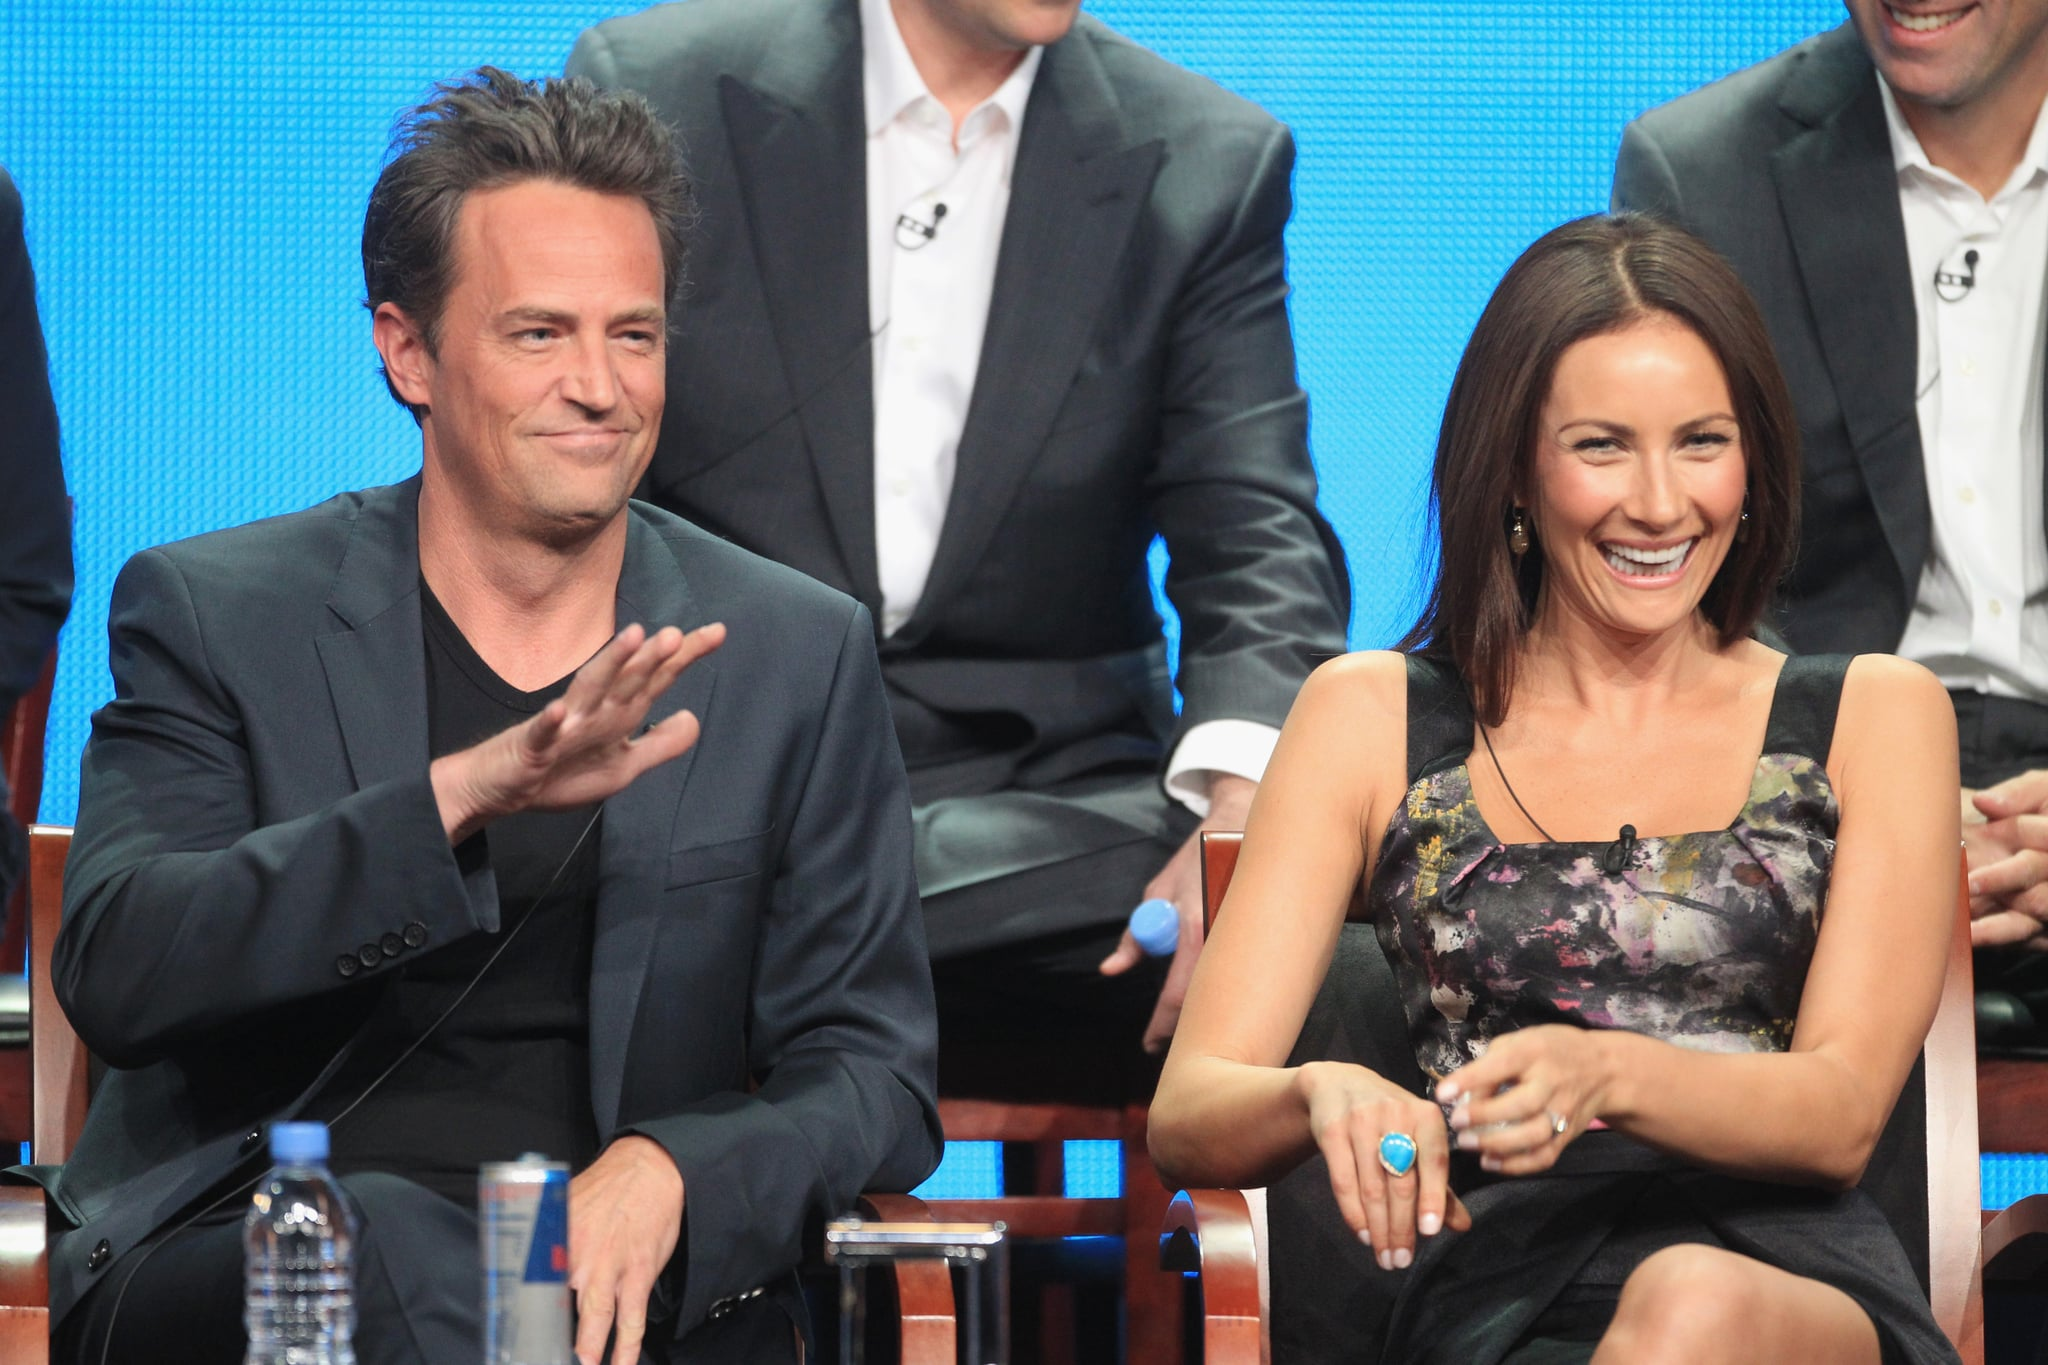 """Matthew Perry appeared alongside Laura Benanti, who plays the counselor of """"Transitions,"""" the grief group Perry's character attends in Go On."""